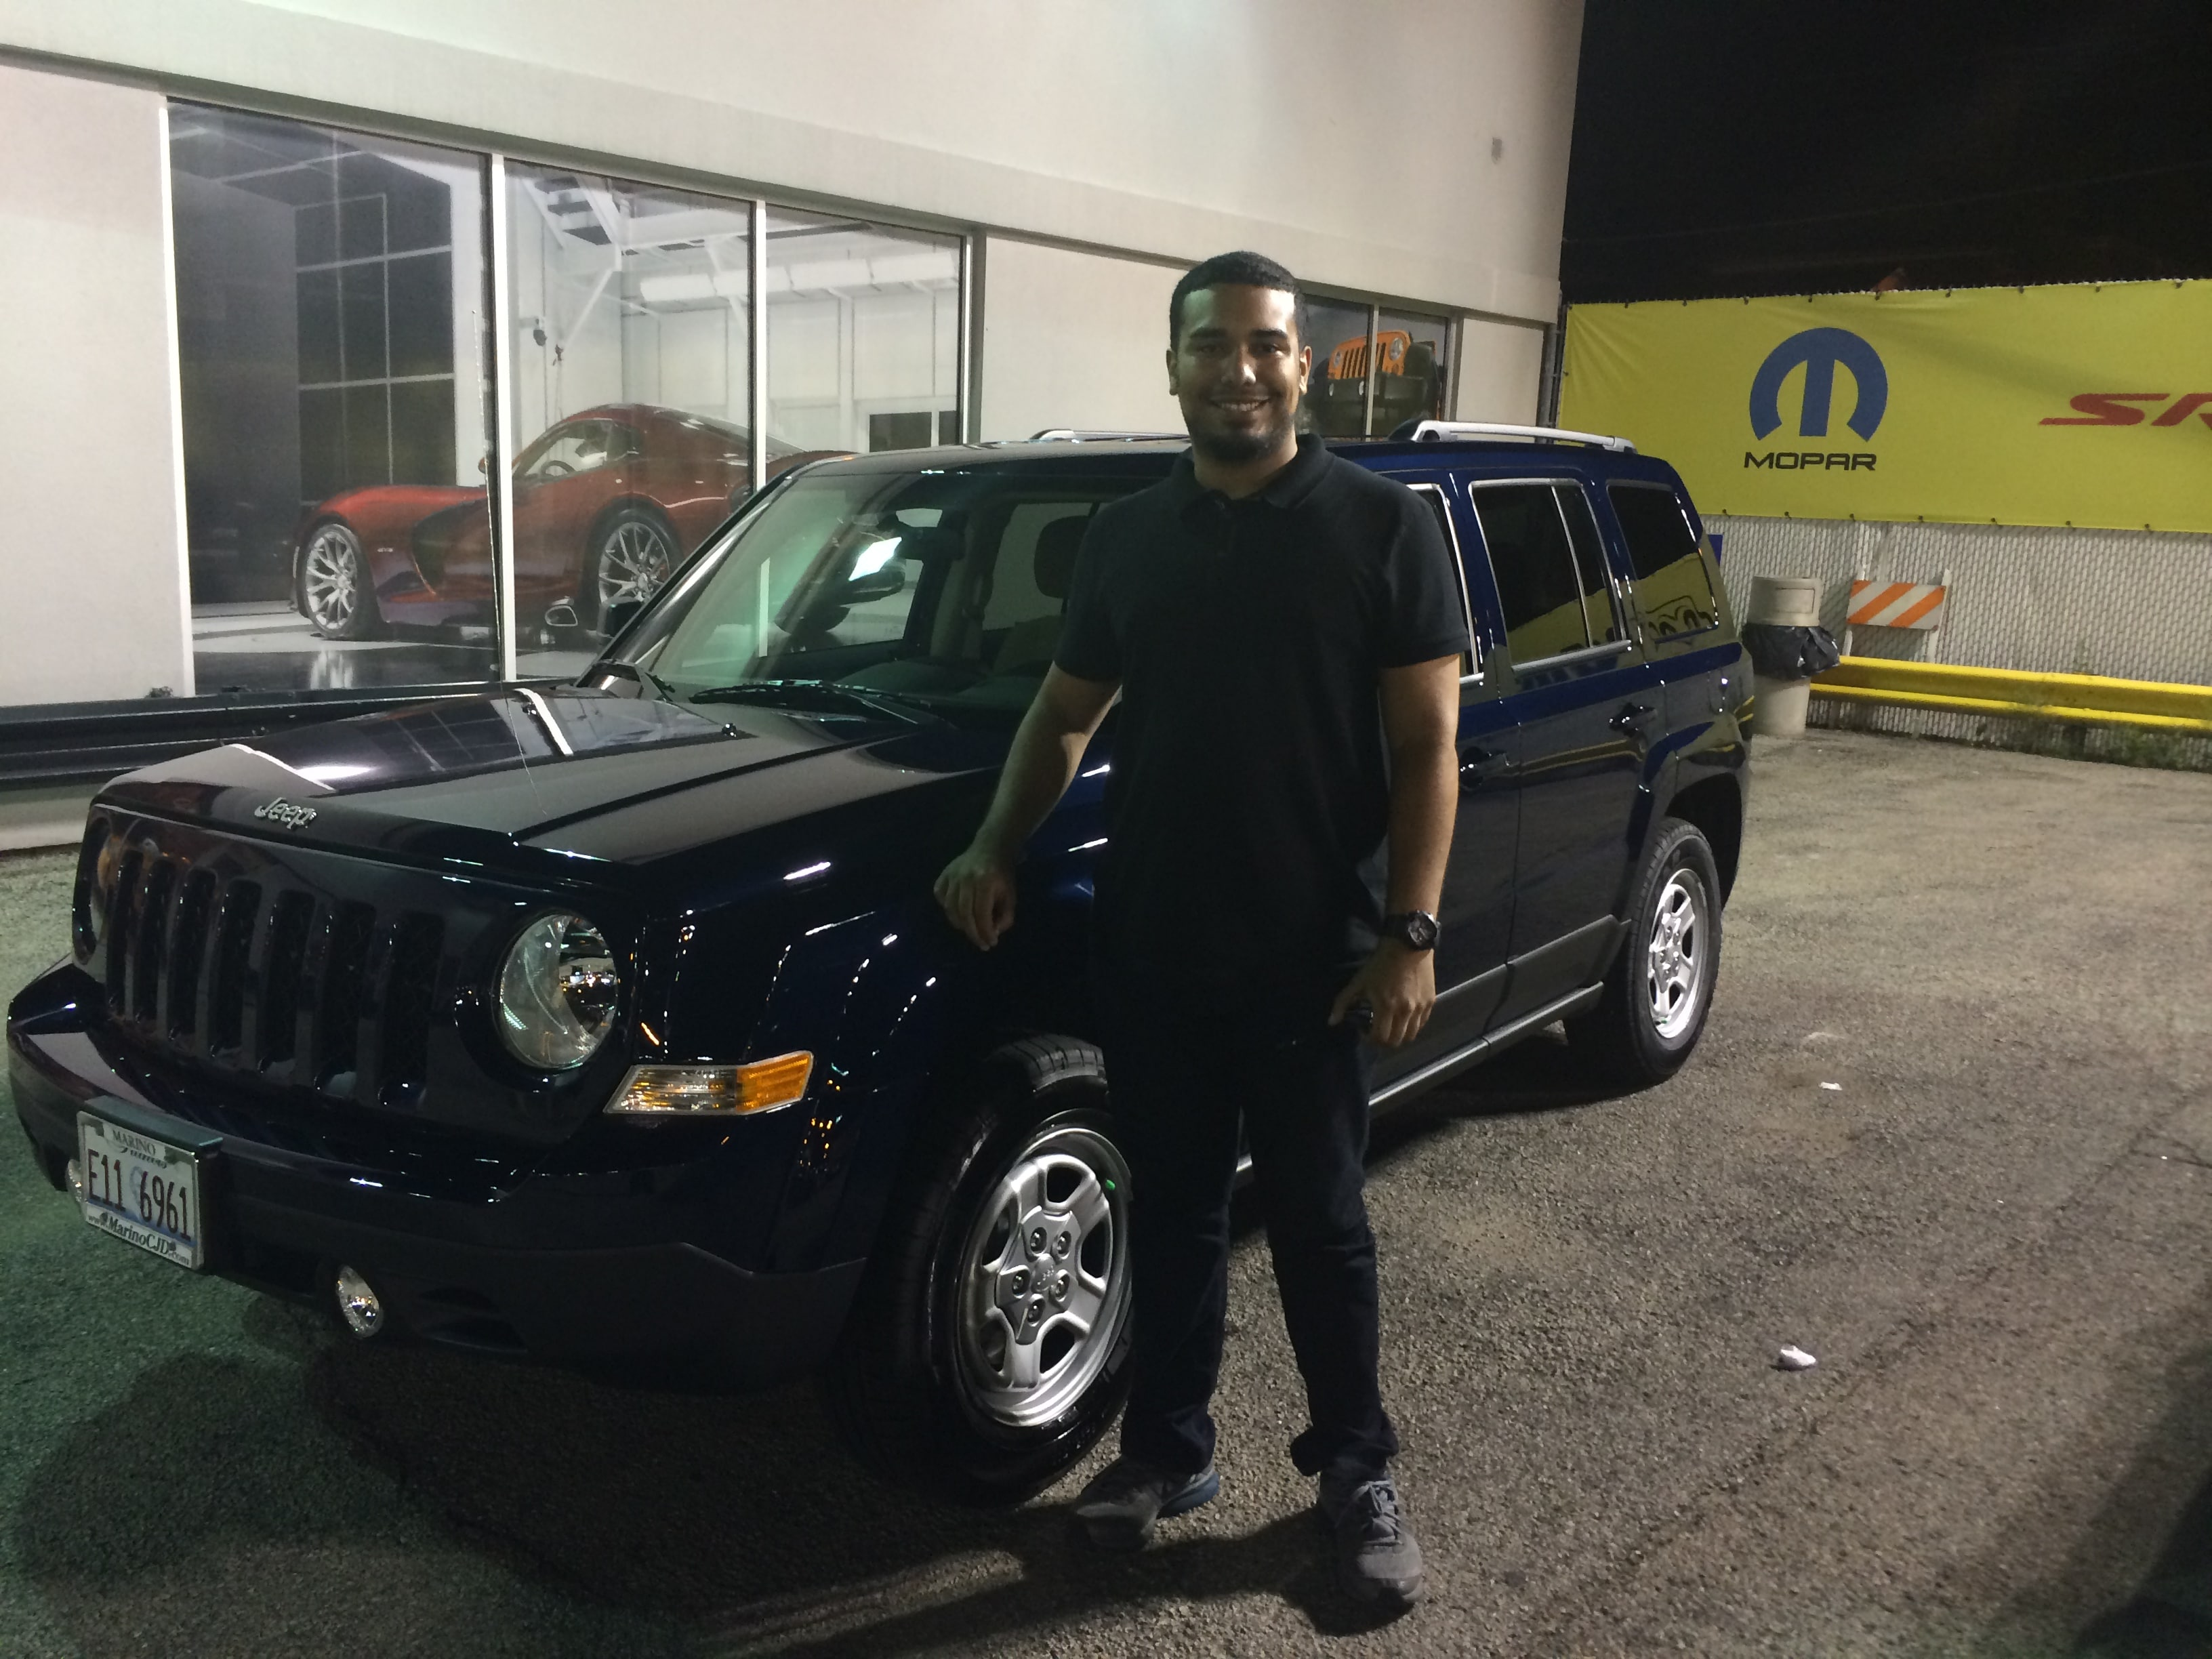 marino chrysler jeep dodge new chrysler dodge jeep ram dealership. Cars Review. Best American Auto & Cars Review